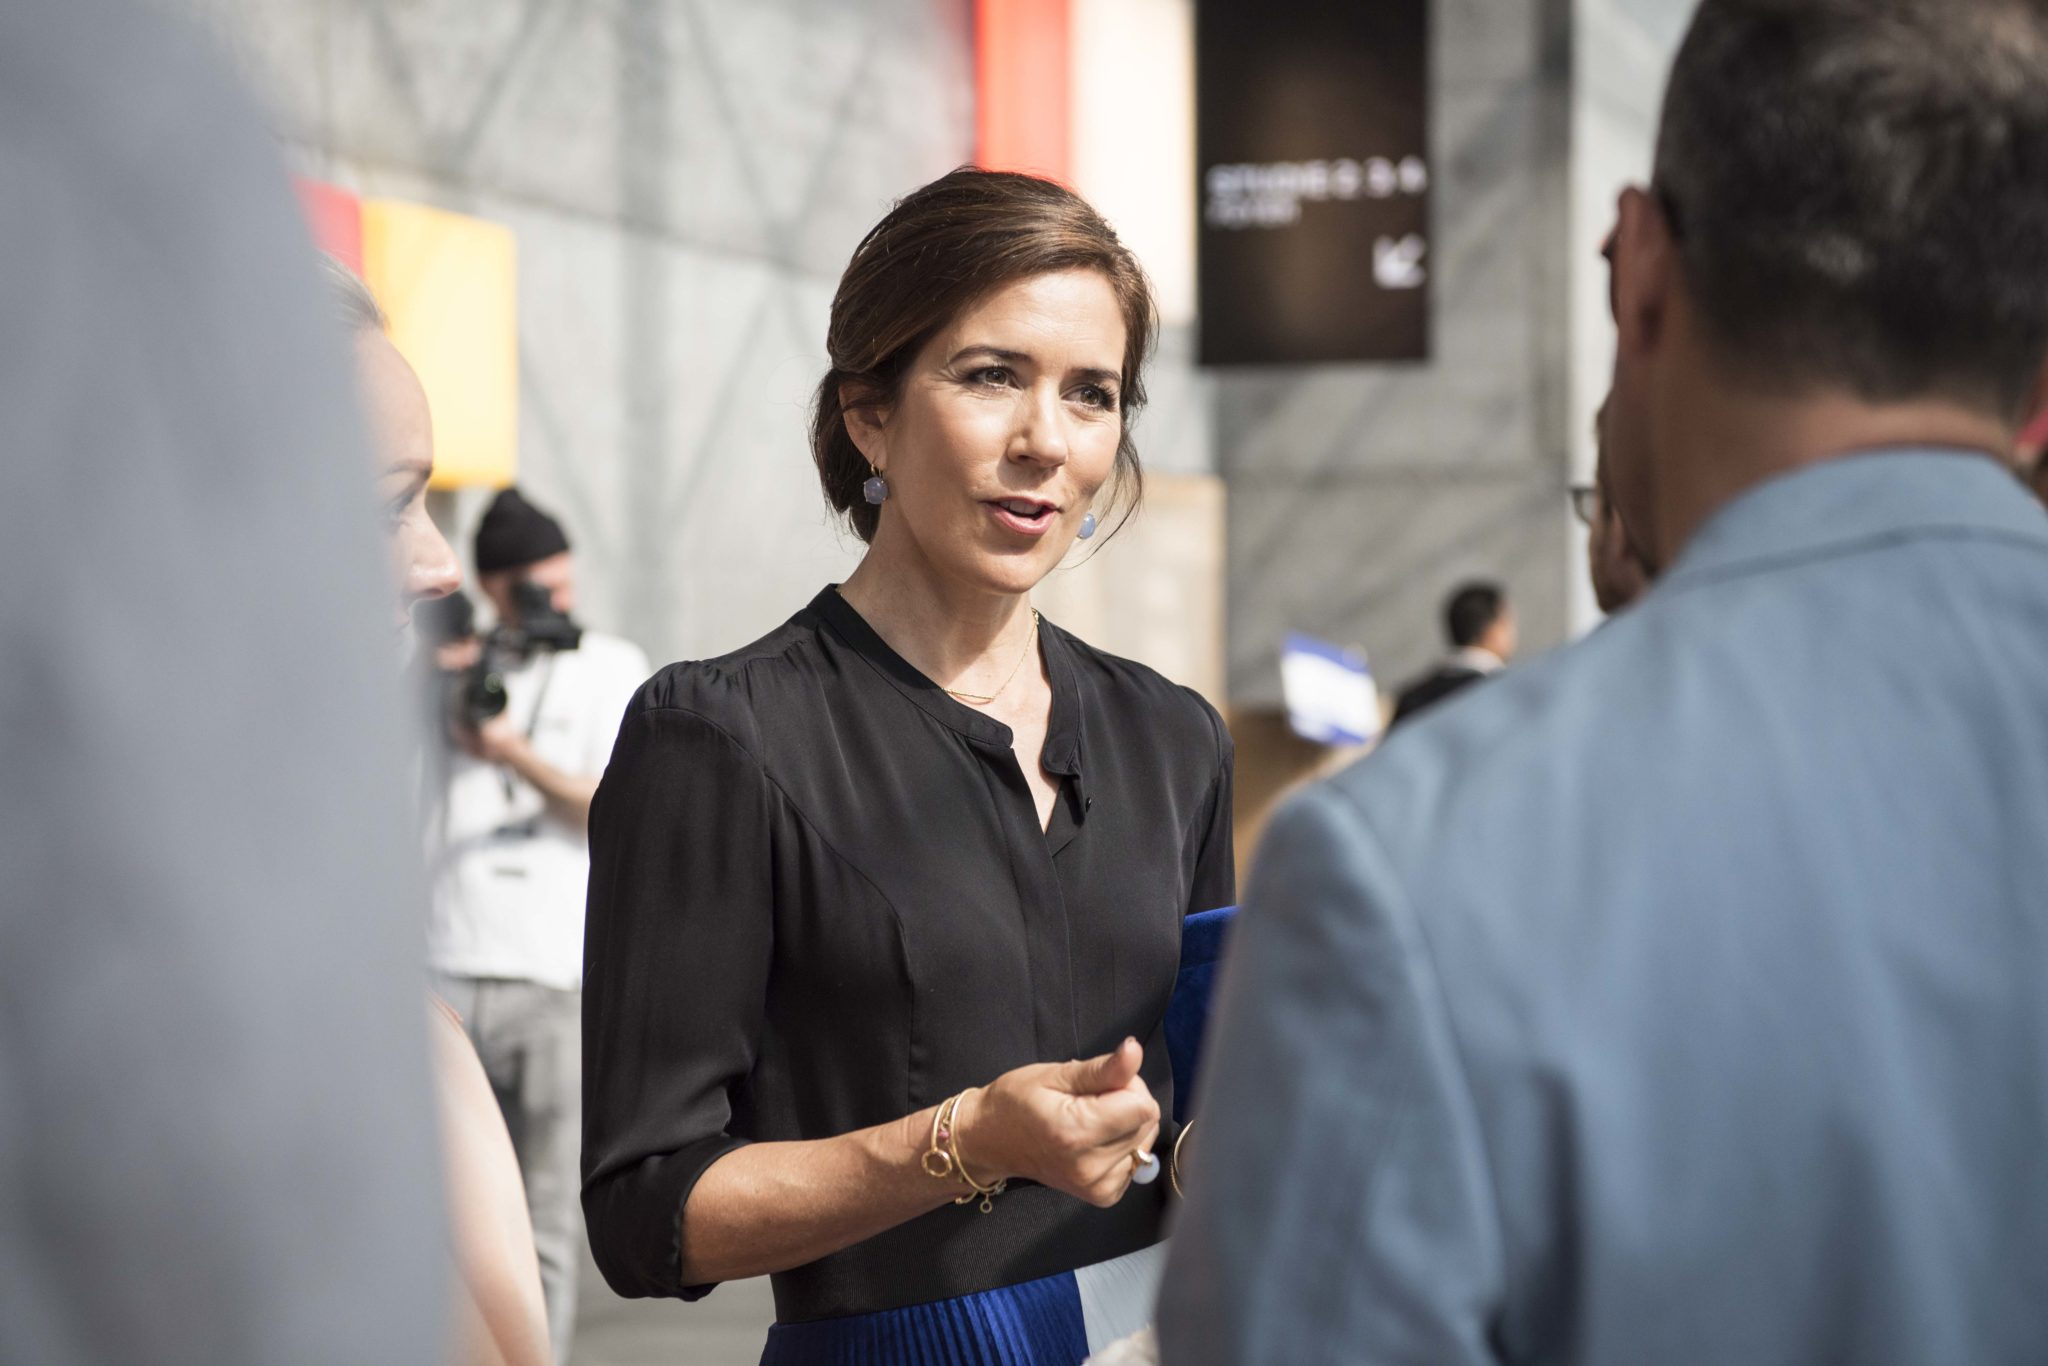 Princess Mary at the Copenhagen Fashion Summit